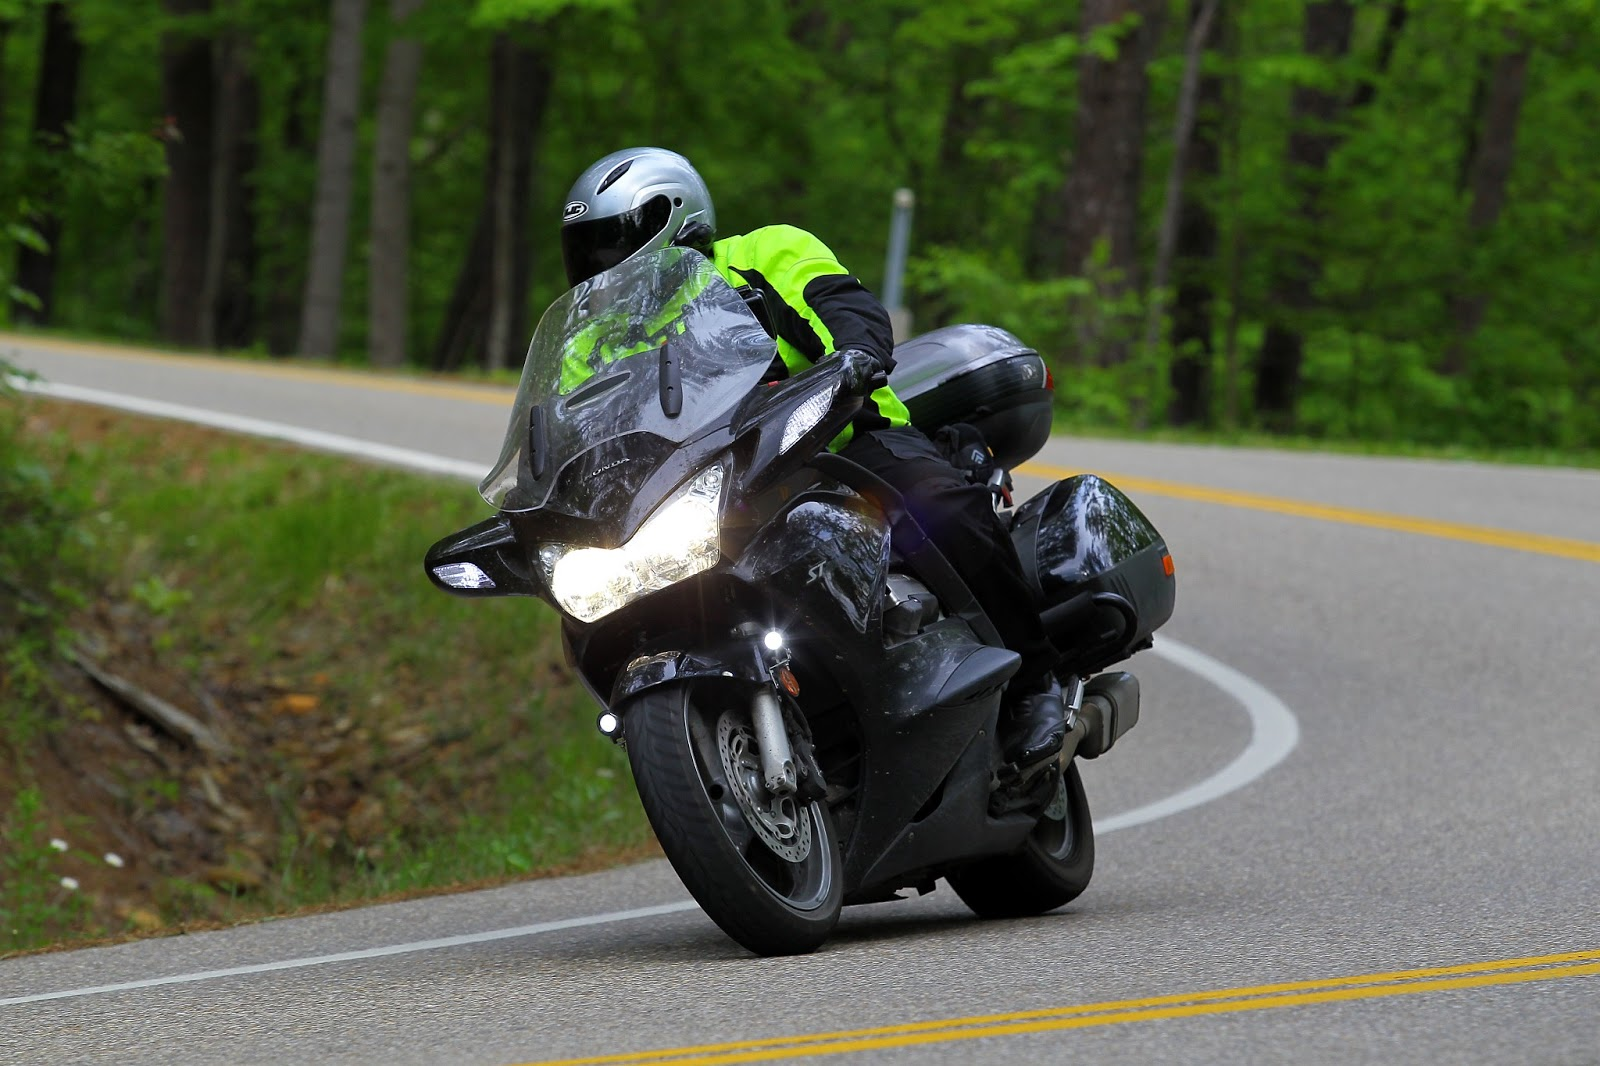 small resolution of first introduced in 2003 and largely unchanged through 2014 honda s st1300 remains a solid if somewhat dated performer the bike is big and heavy 730